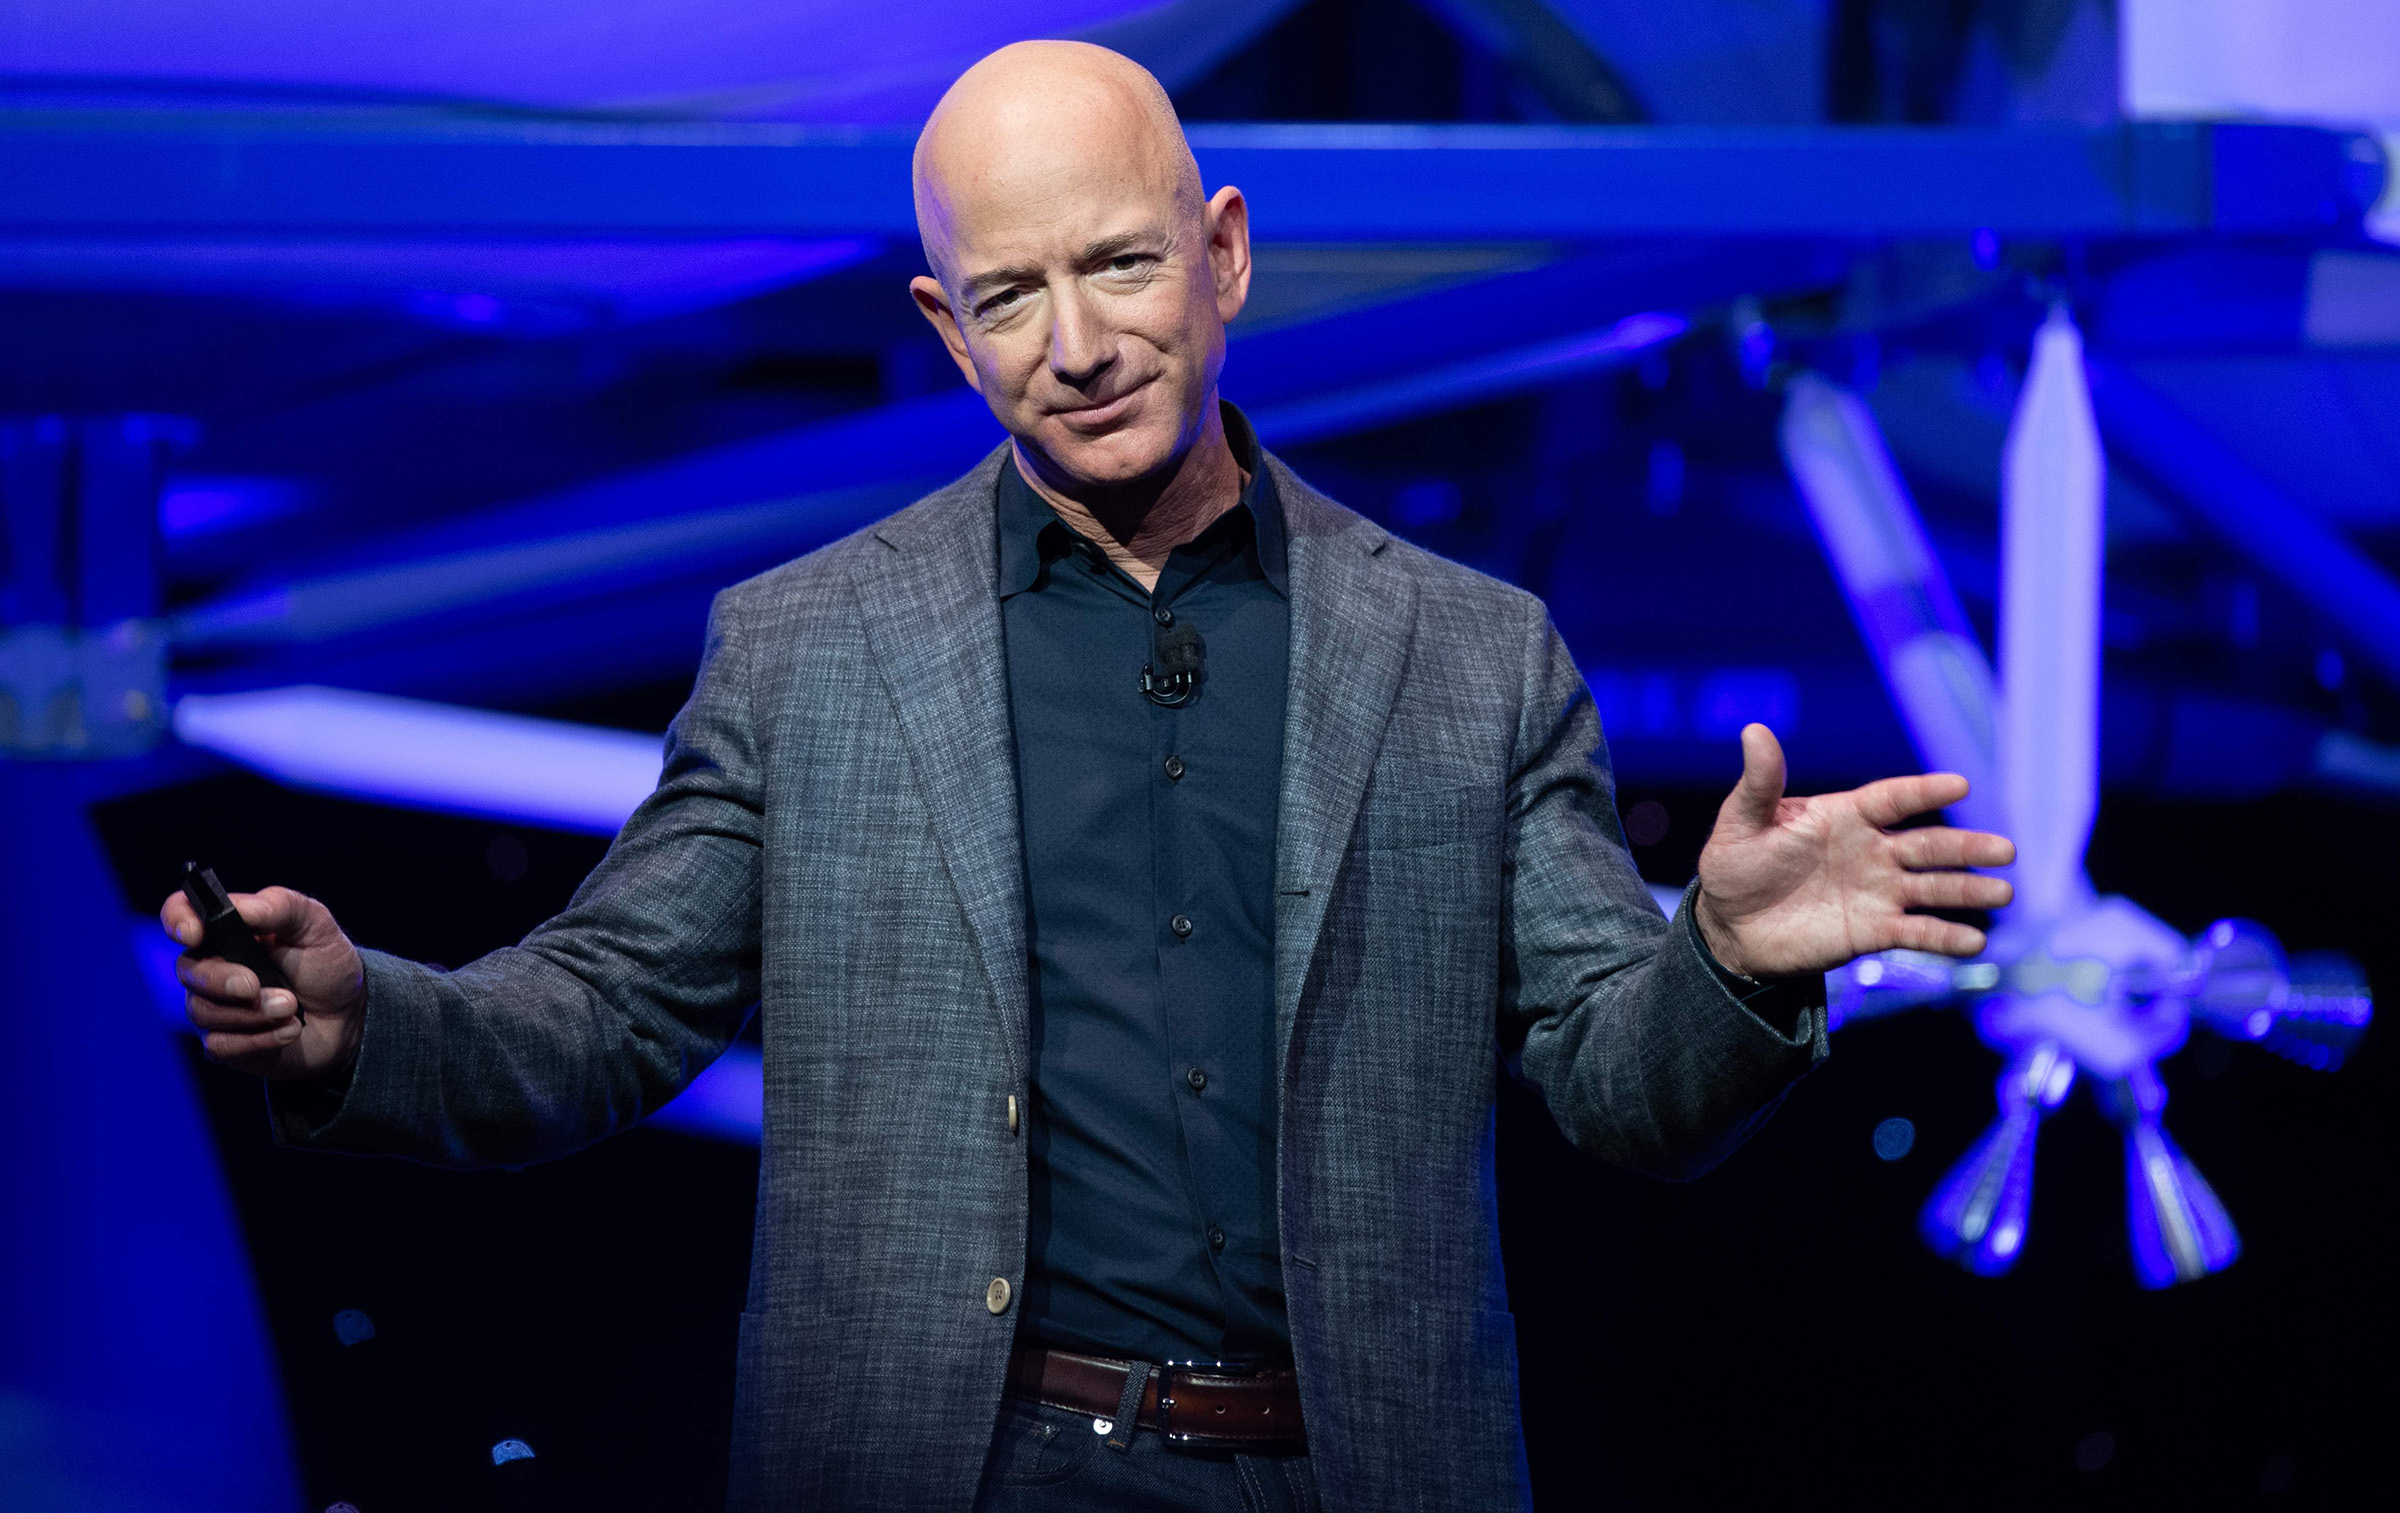 Amazon CEO Jeff Bezos announces Blue Moon, a lunar landing vehicle for the Moon, during an event in Washington, DC, on May 9, 2019.